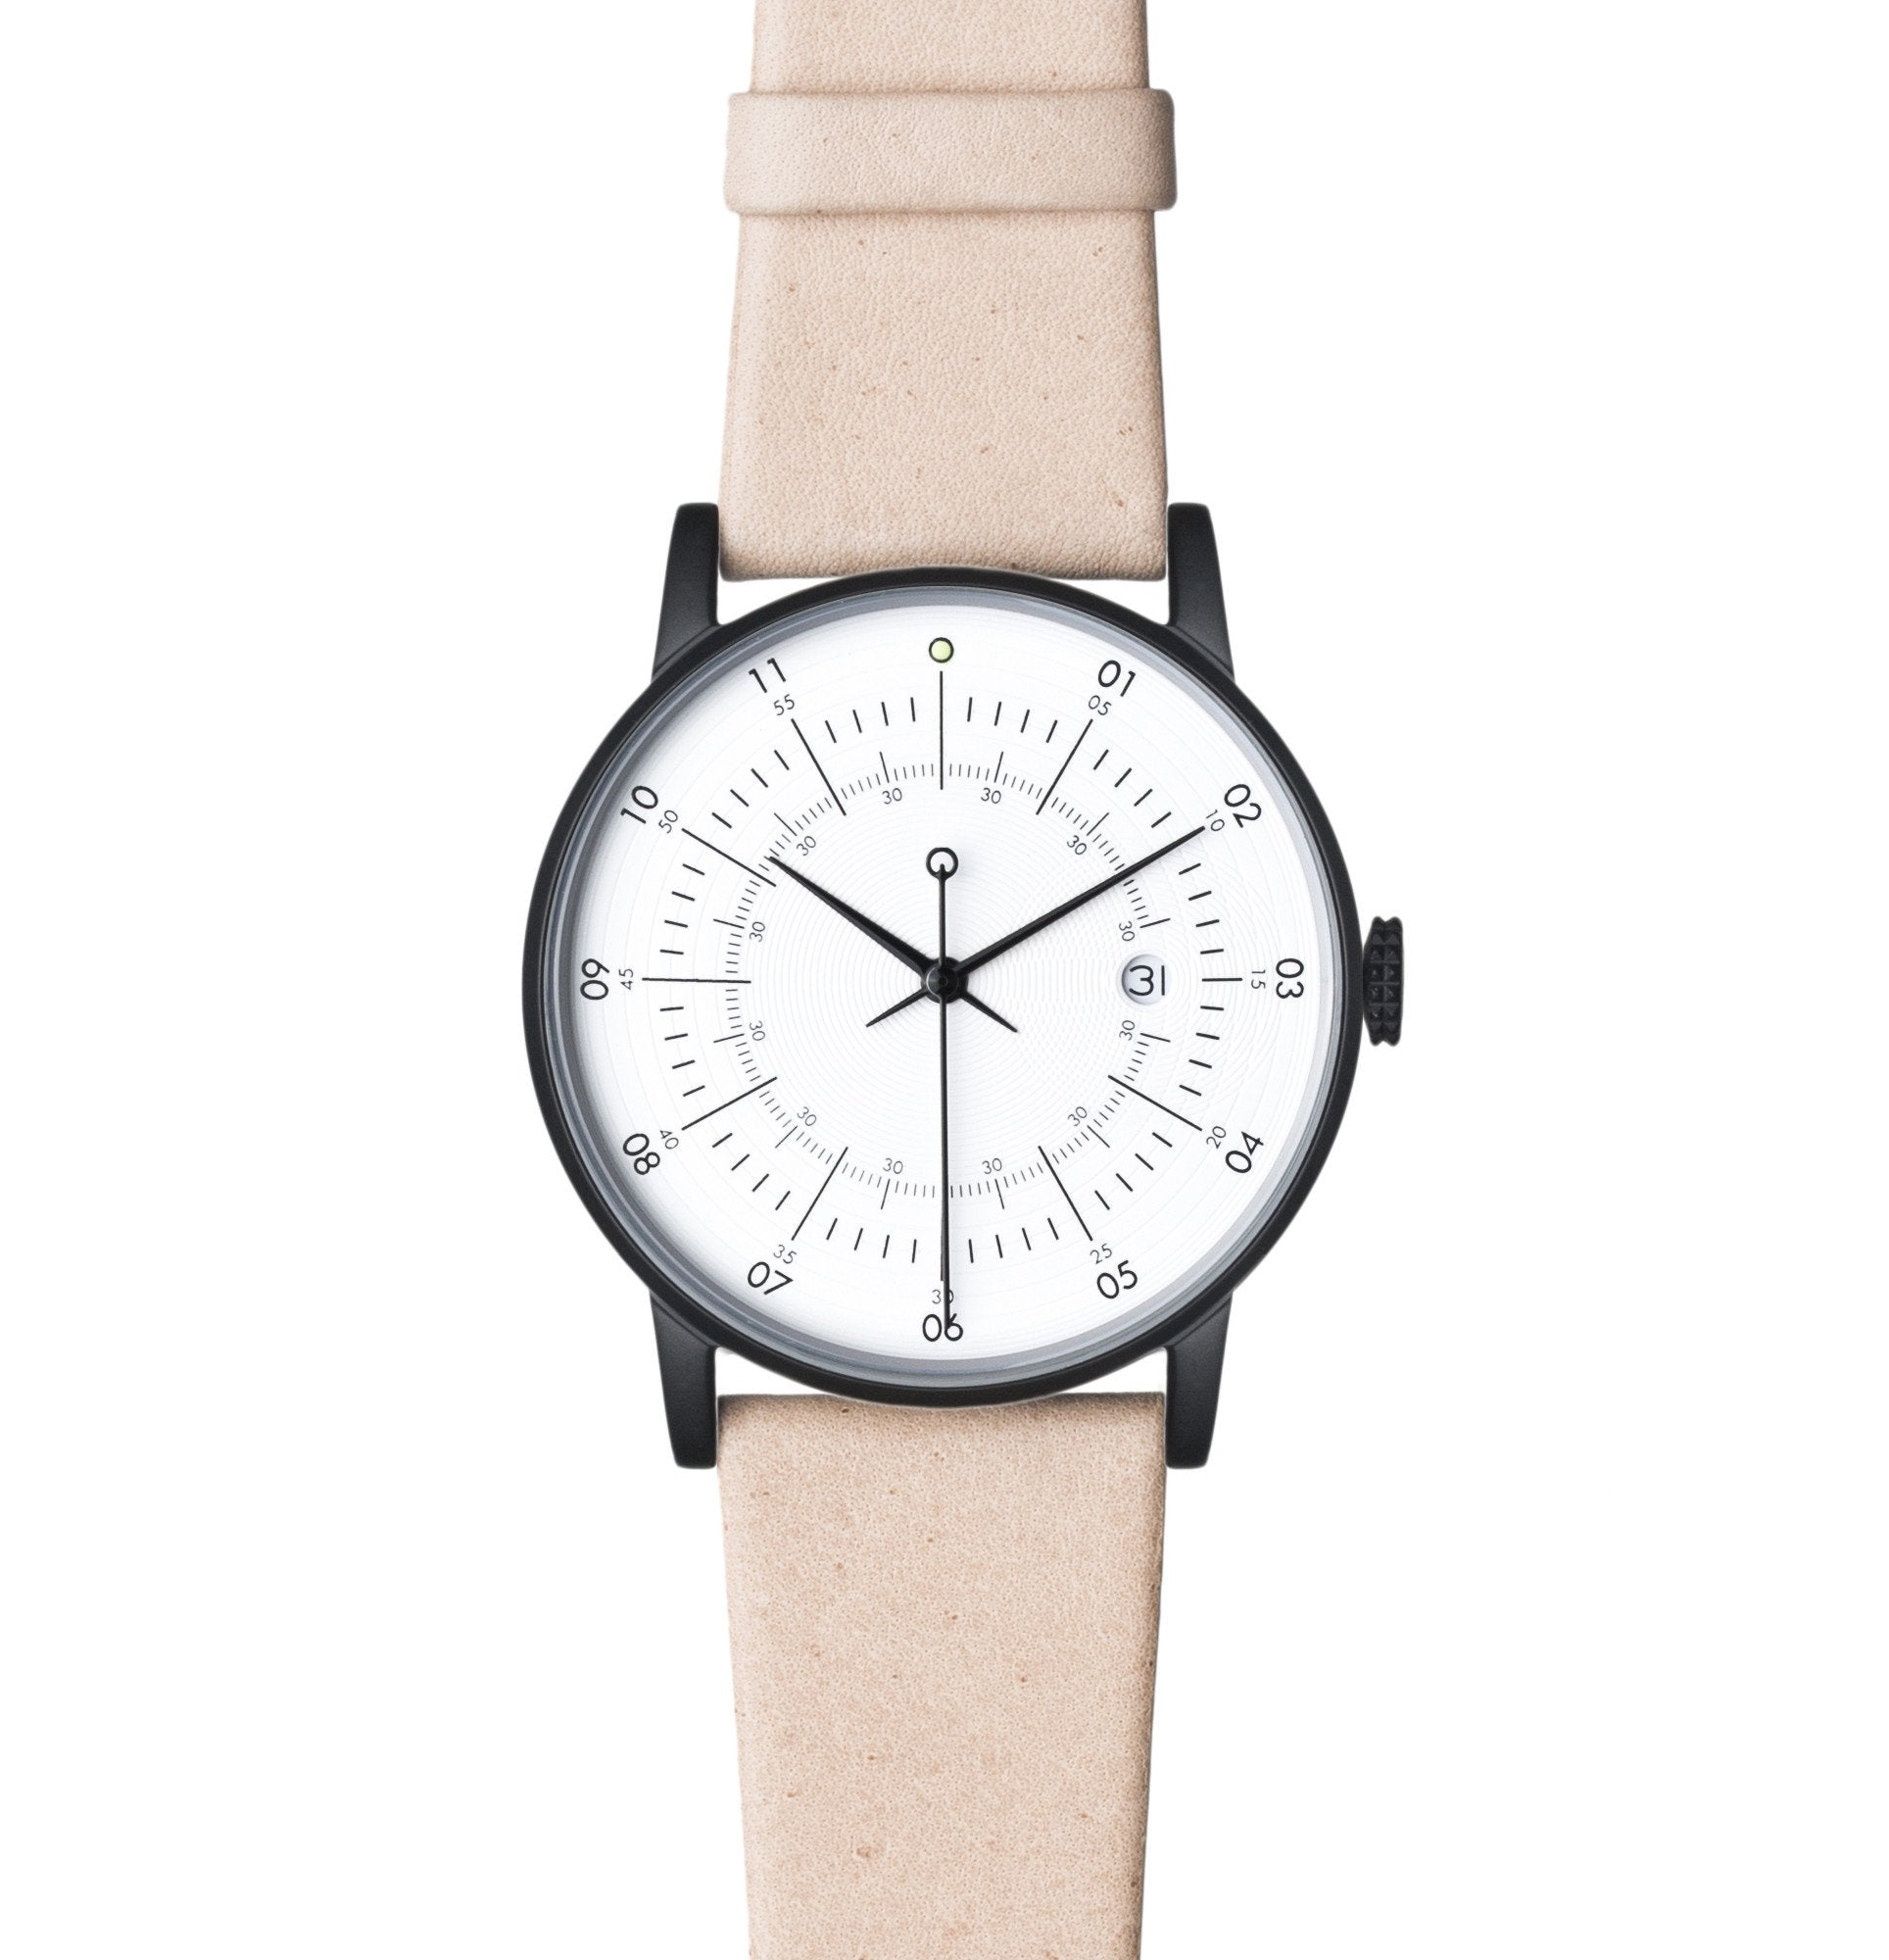 SQ38 Plano watch, PS-11